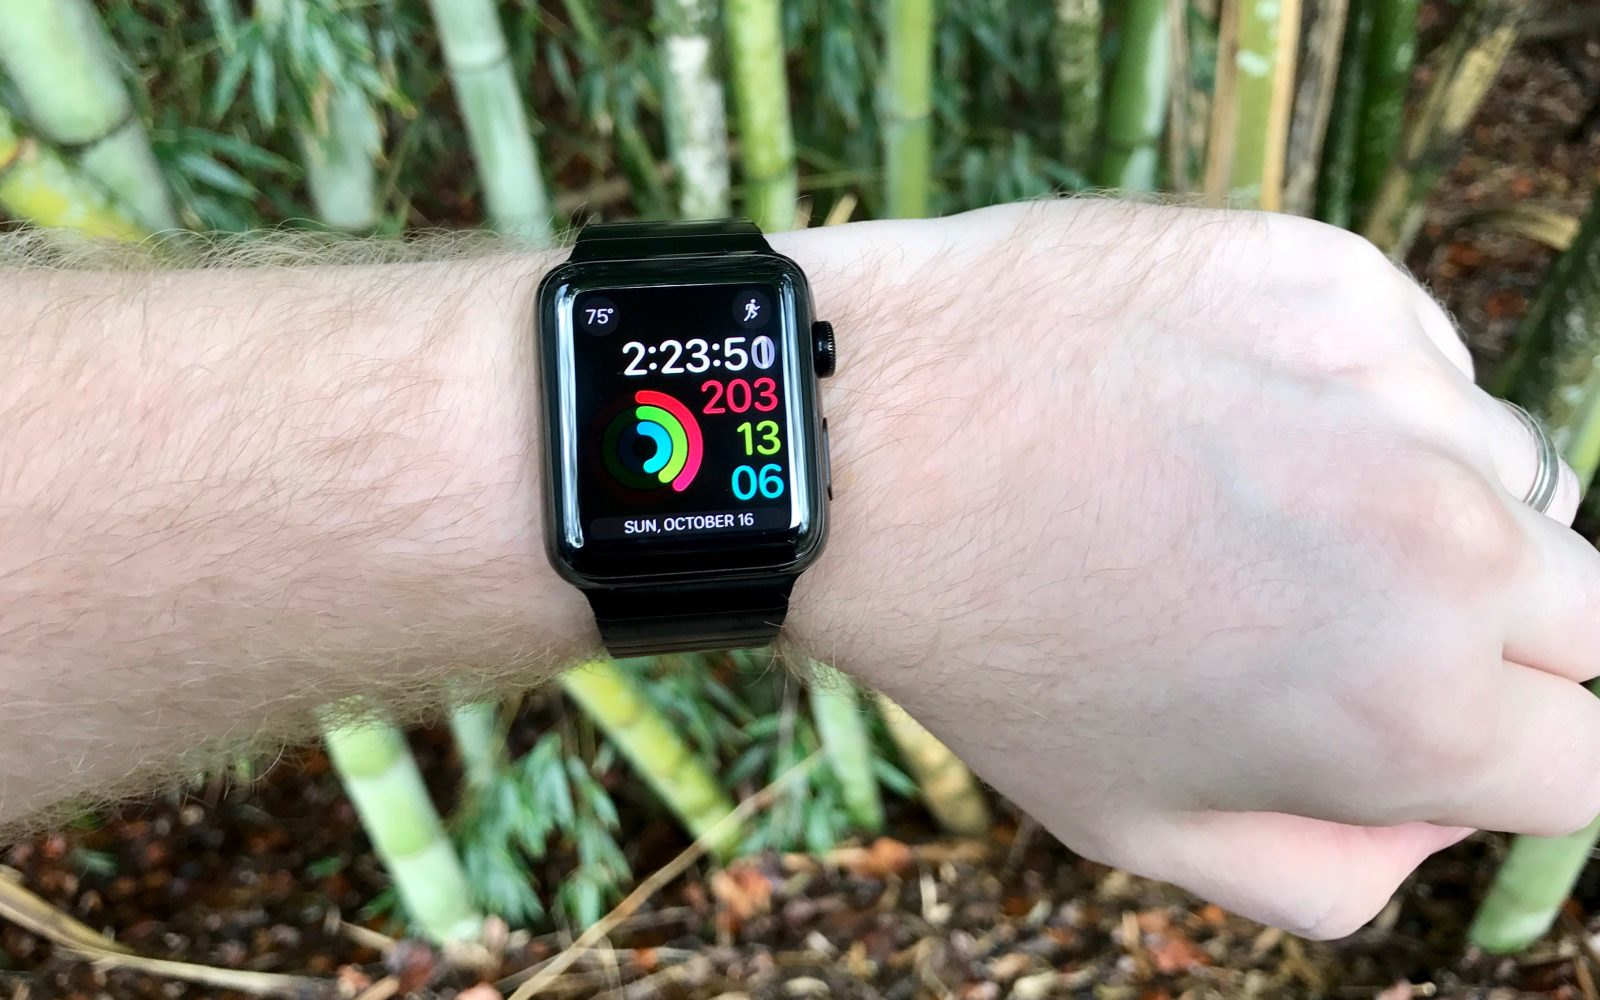 Apple Watch Series 2 Post Review Tidbits Watchos 31 Battery Life Baterai Iwatch 38mm Gps Navigation Water Resistance More